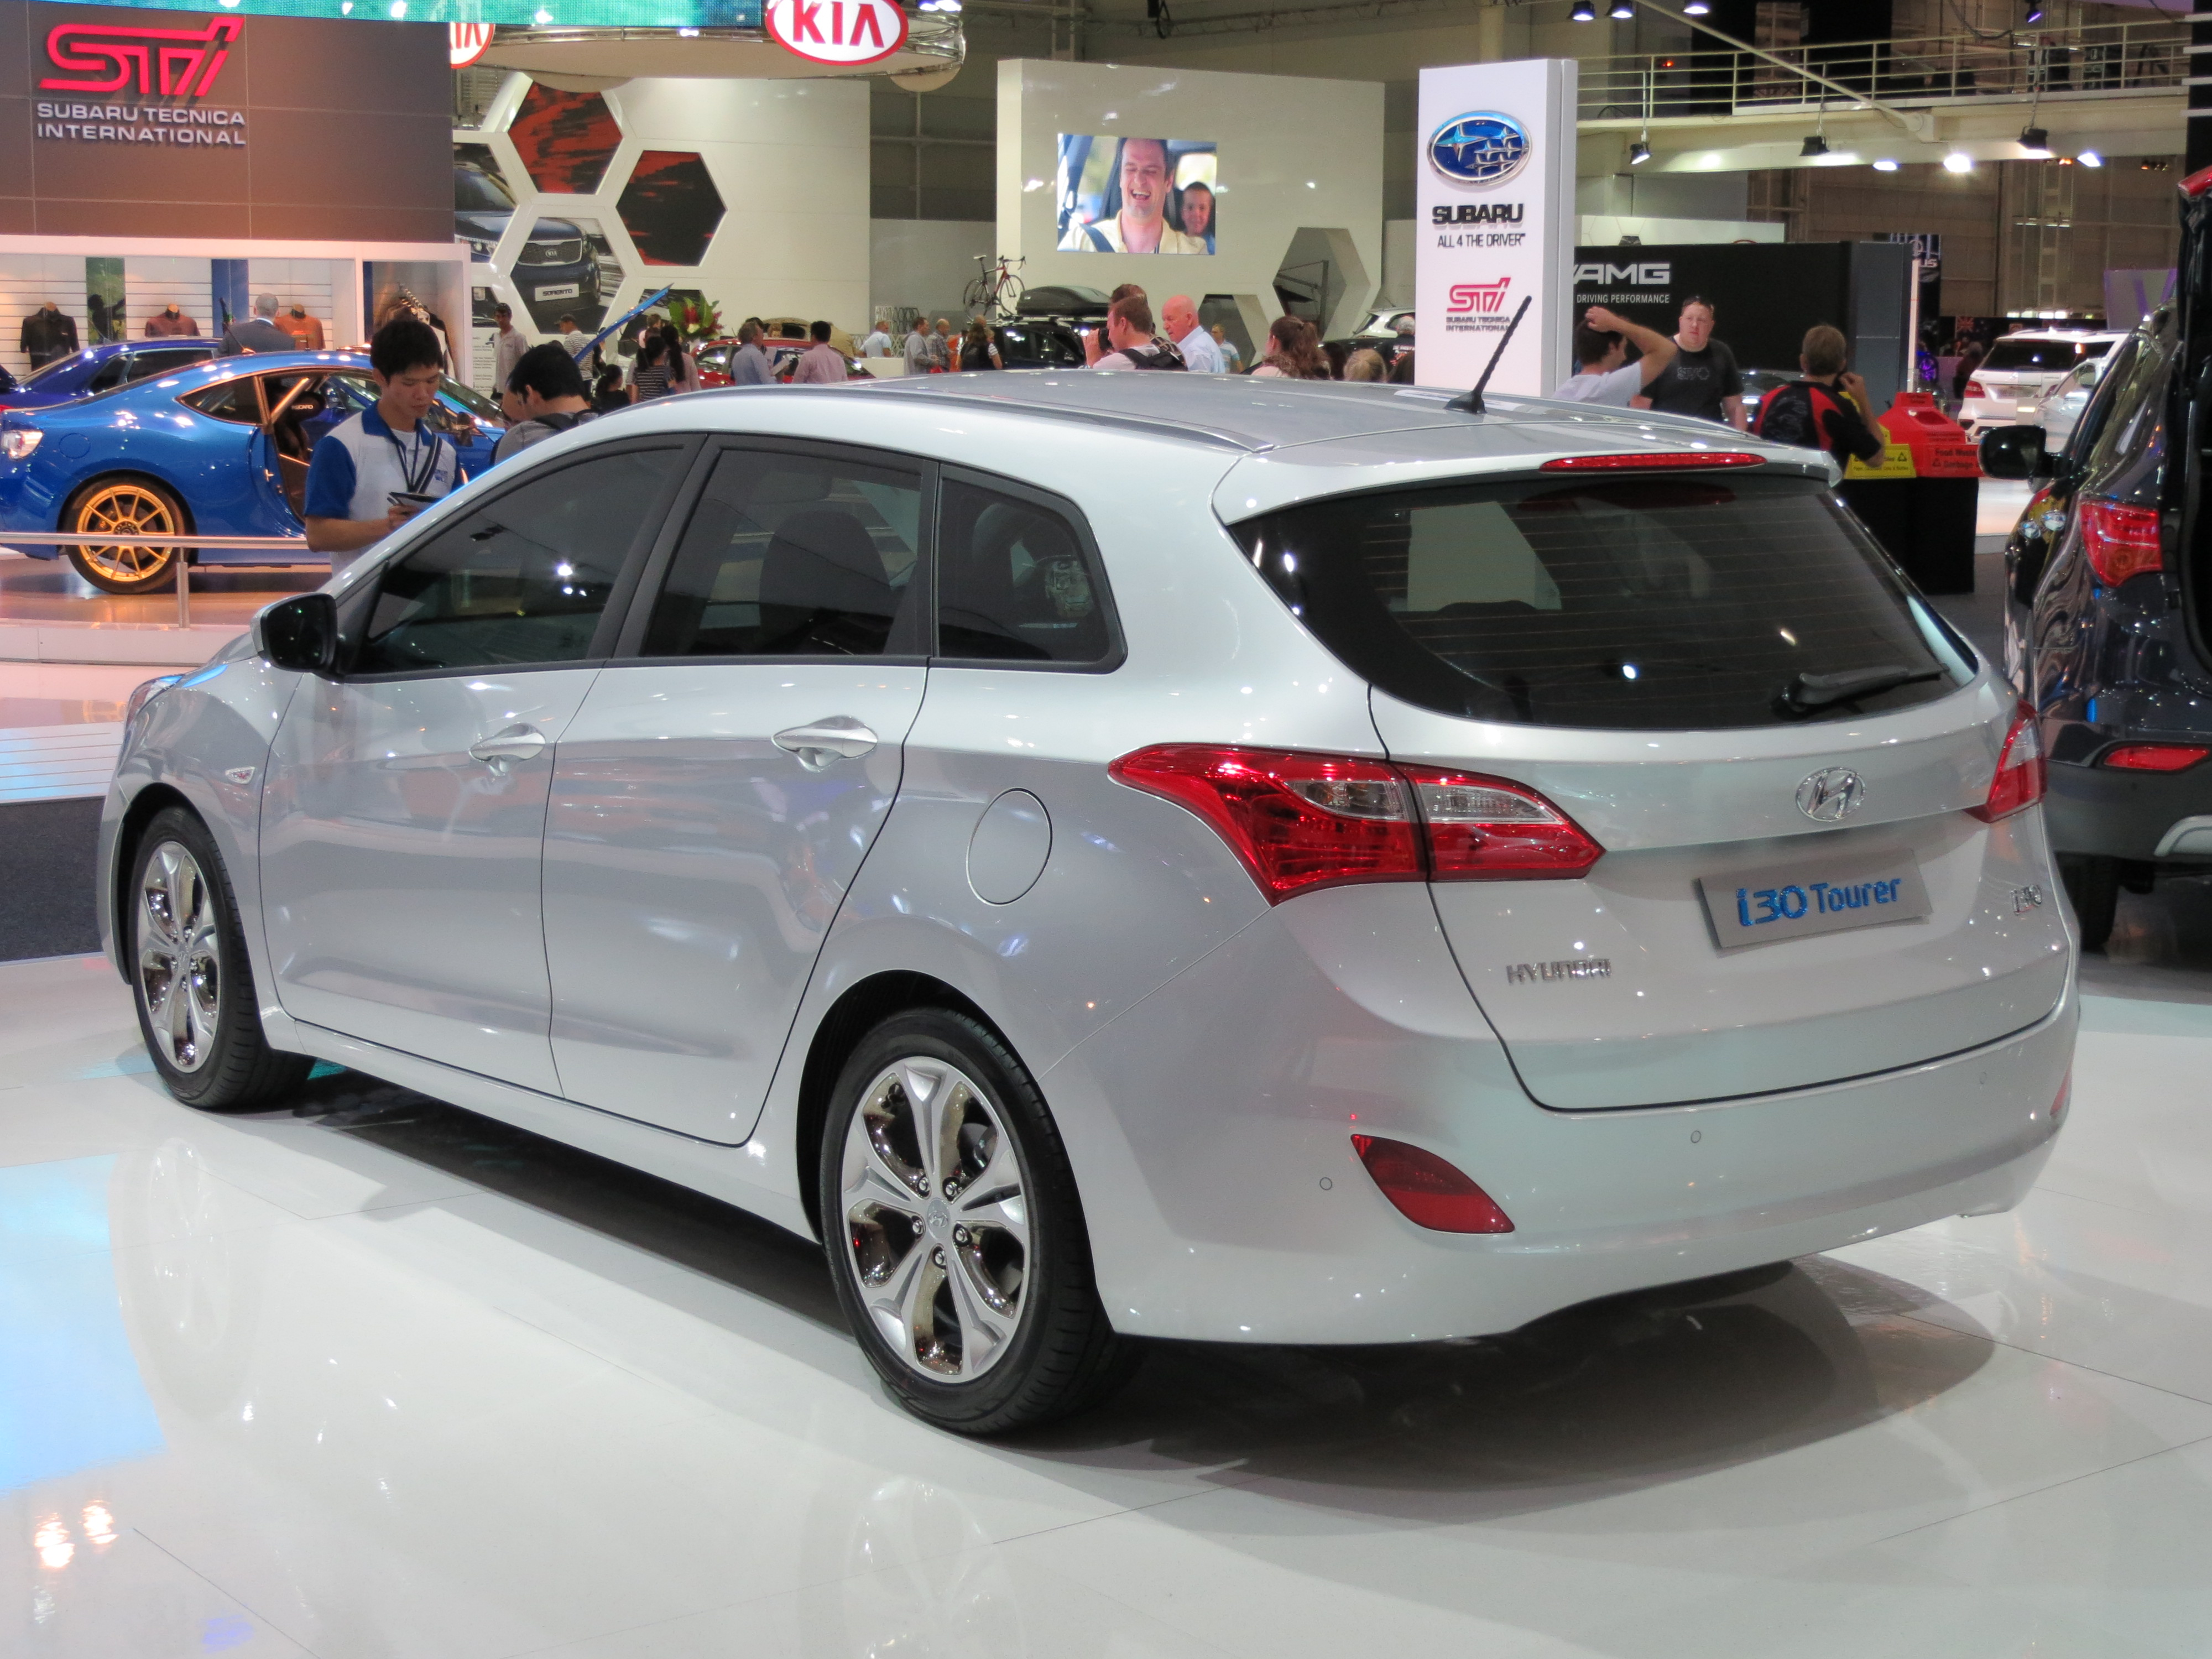 file 2012 hyundai i30 gd tourer 2012 10 26 wikimedia commons. Black Bedroom Furniture Sets. Home Design Ideas